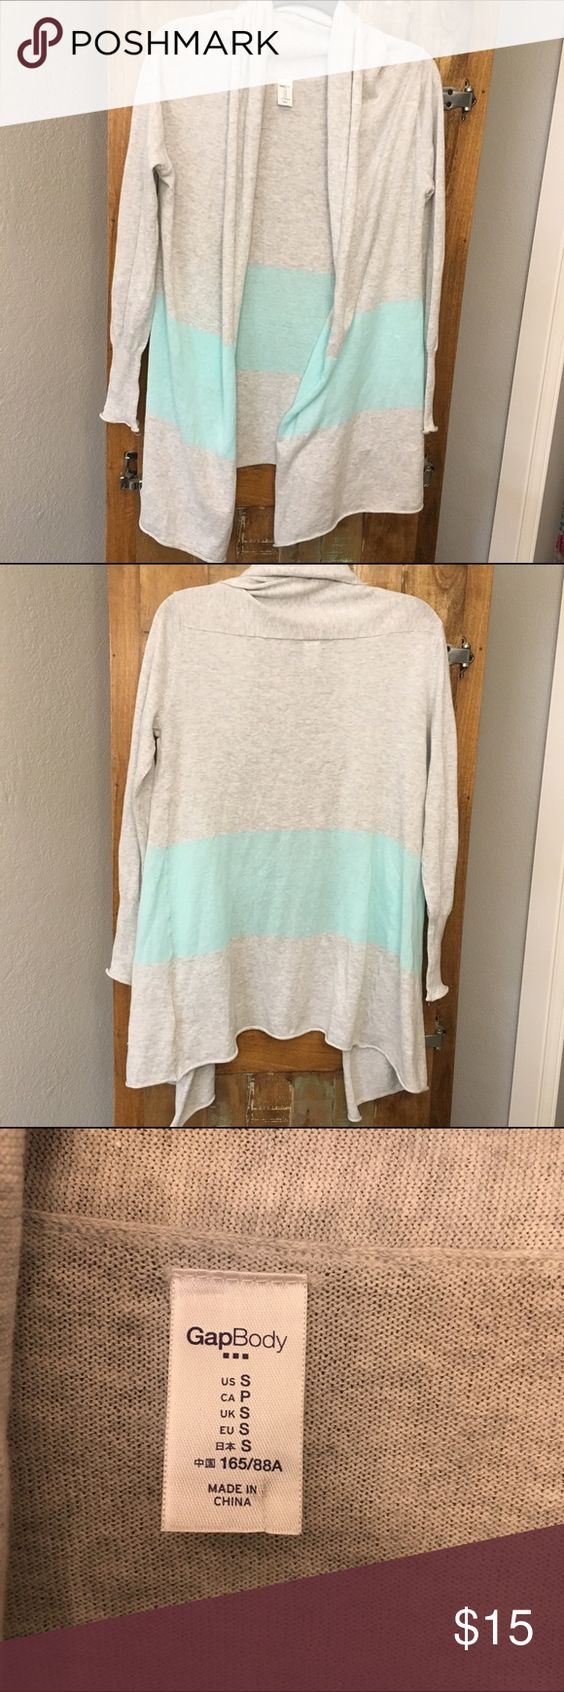 Gap body color block cardigan Gently used and in great condition other than a tiny hole in the material where the neck is. Never even noticeable bc the fabric gathers there. GAP Sweaters Cardigans